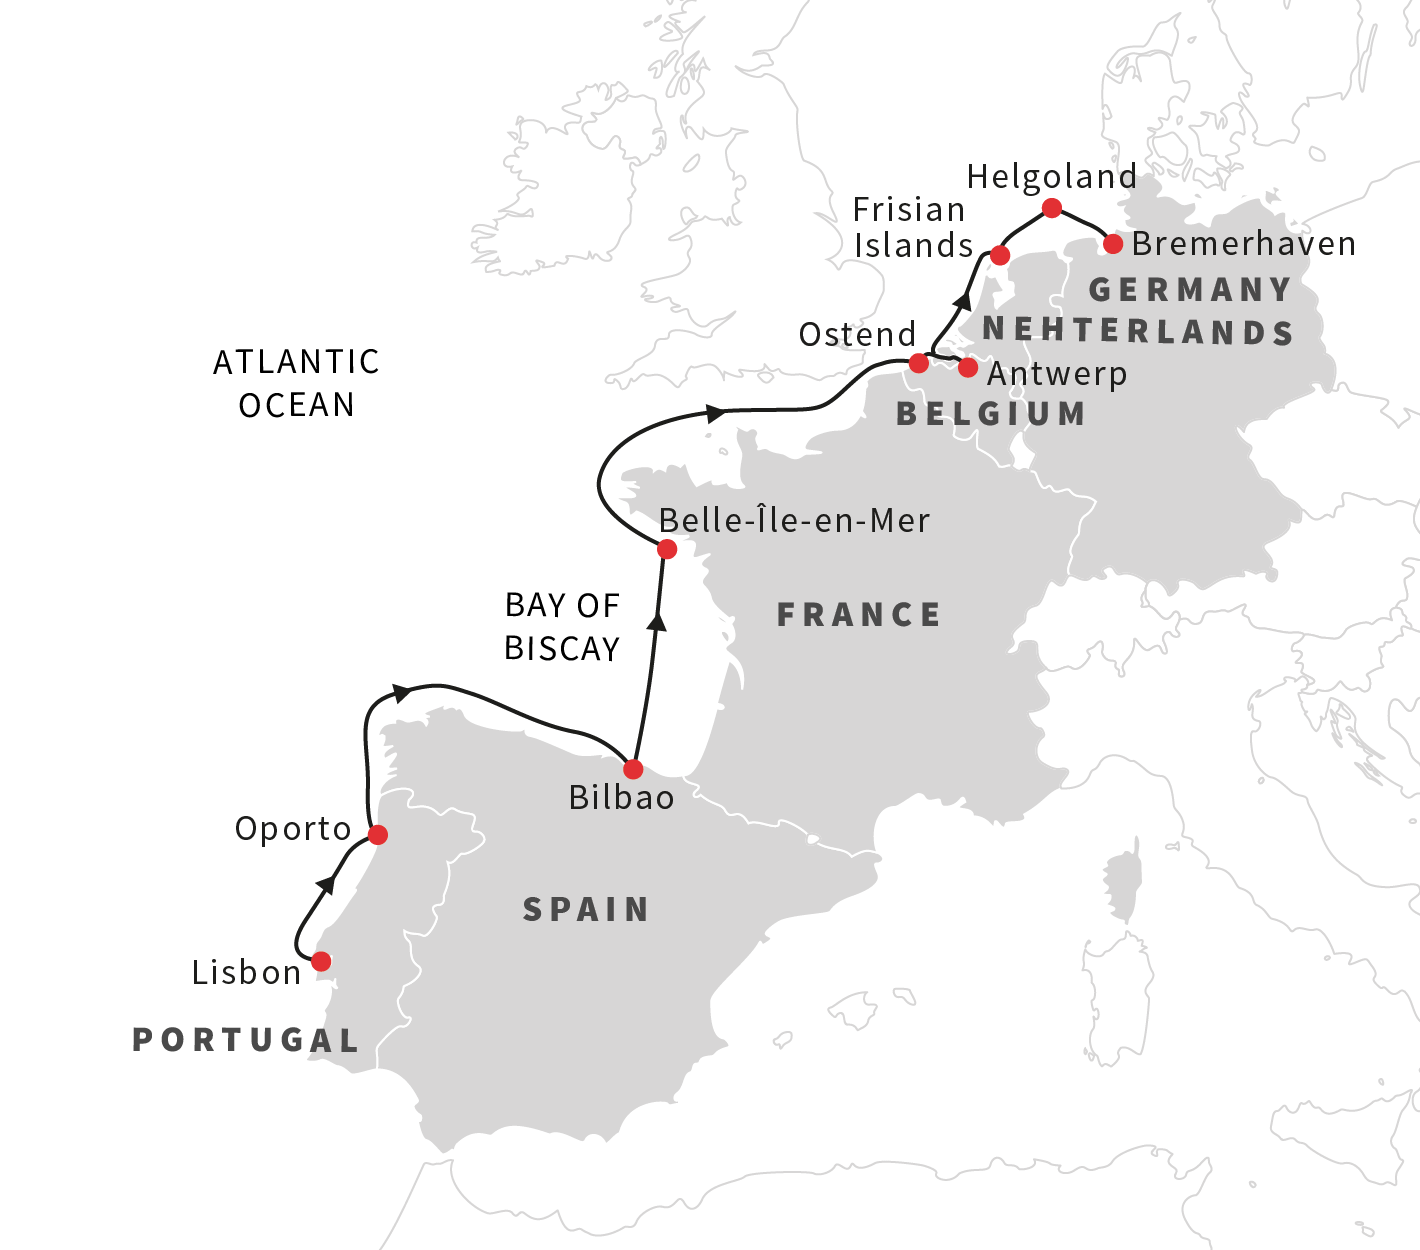 Map for Navigating the Bays and Islands of Western Europe